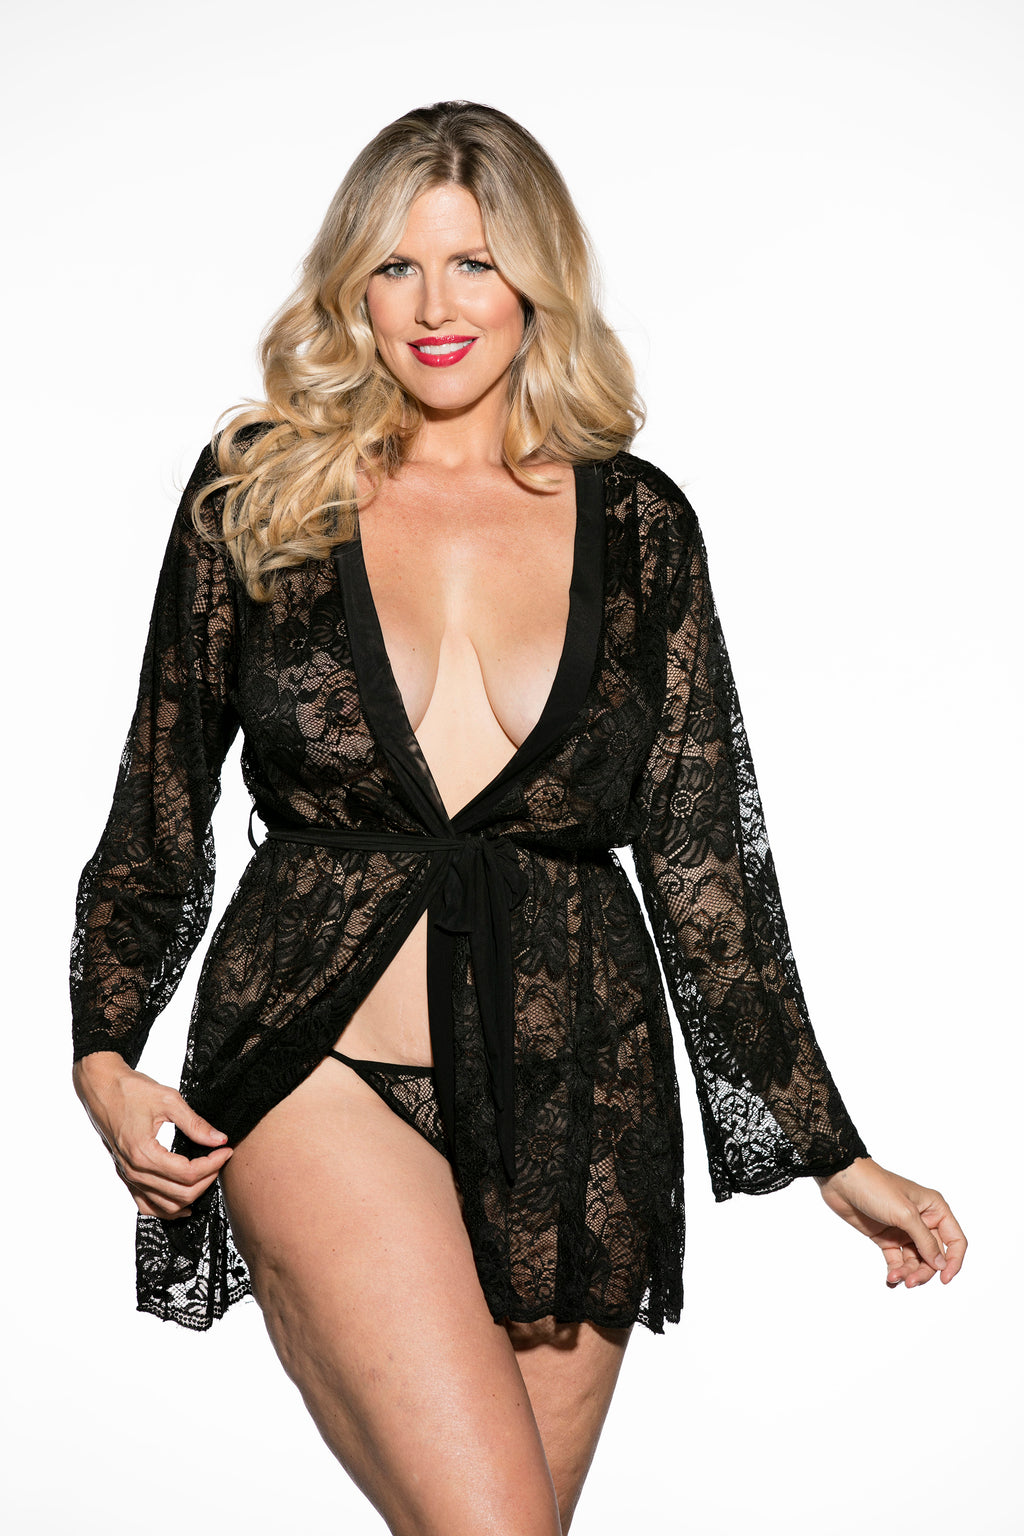 Stretch lace robe with knit trim collar, tie belt and comes with stretch lace g-string.